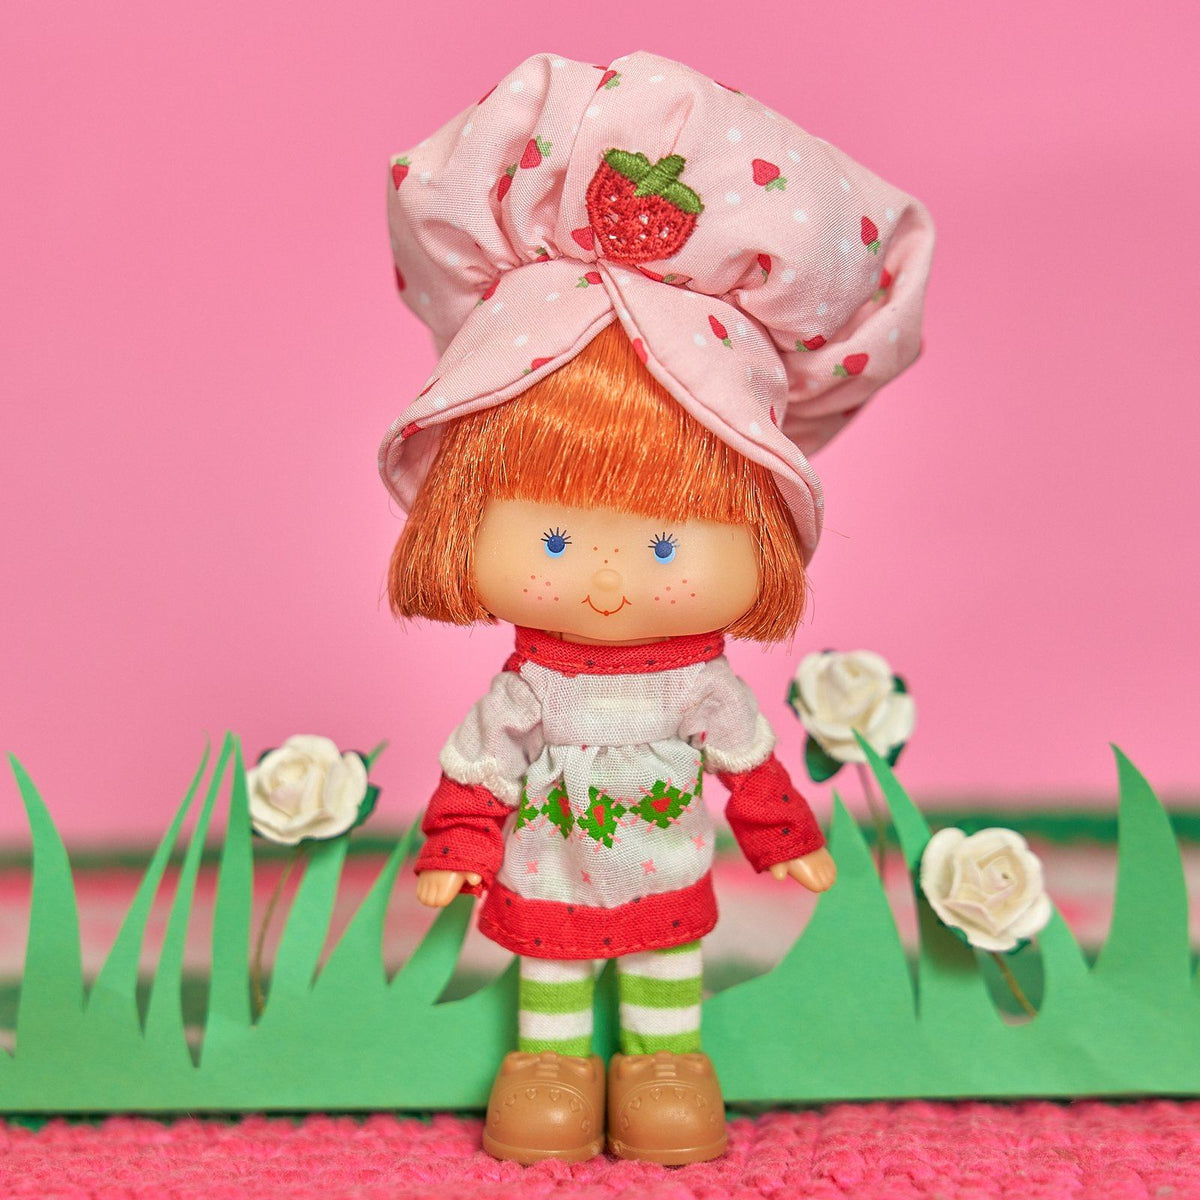 "Retro Strawberry Shortcake Doll - Scented 6"" Classic Doll - Schylling - AlwaysFits.com"